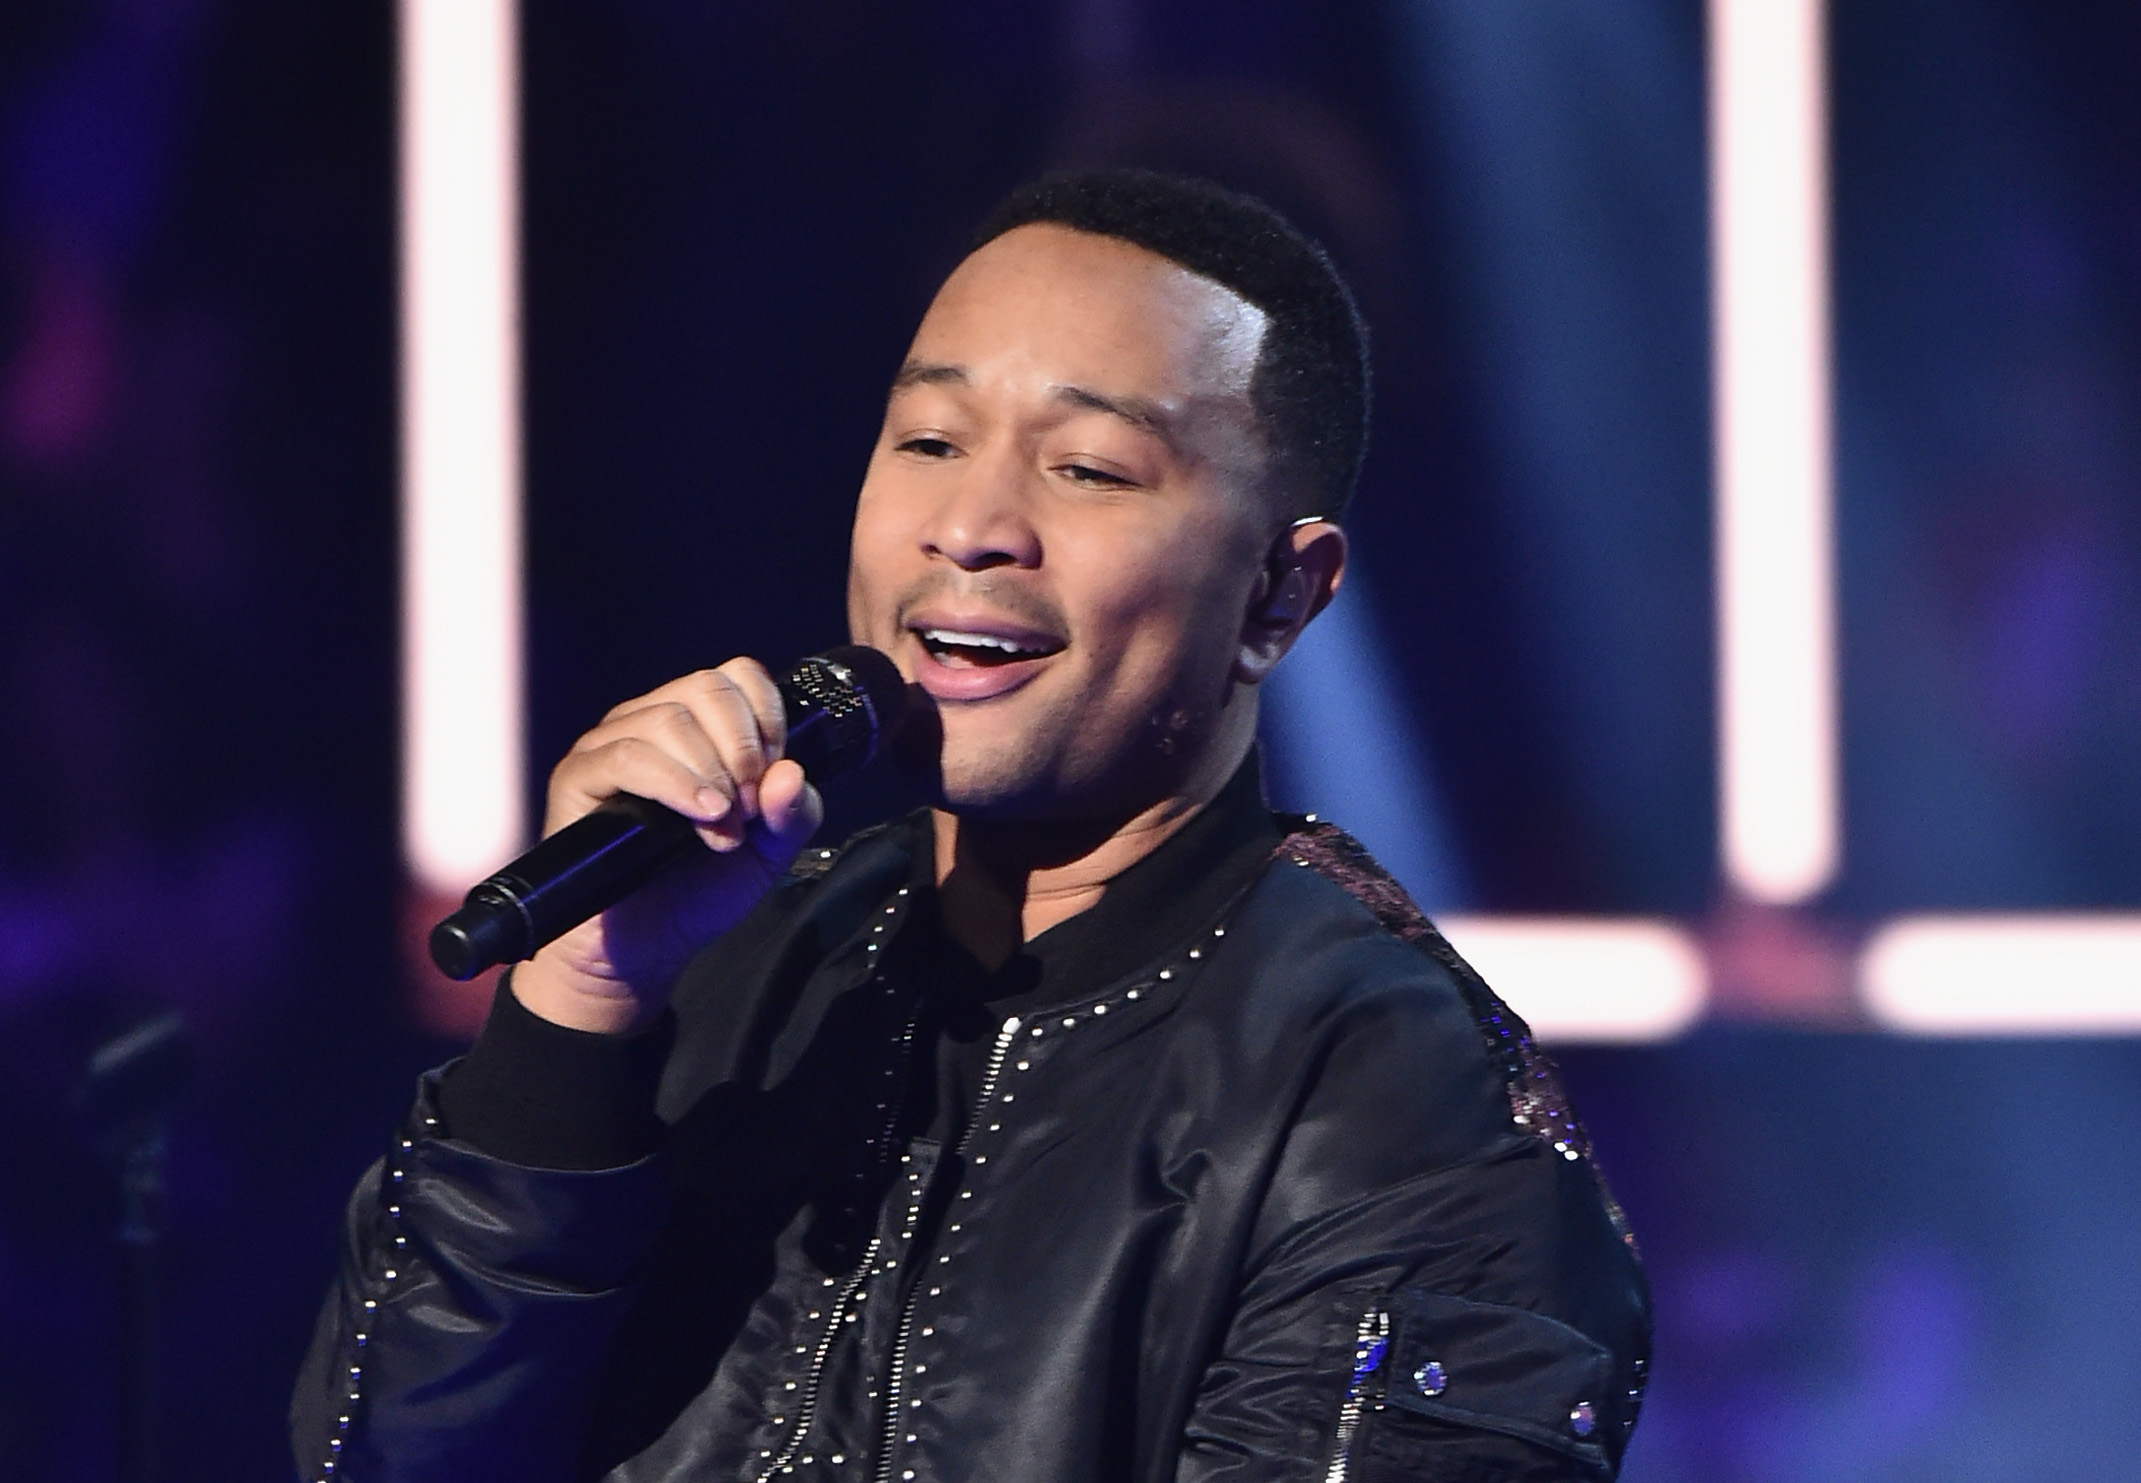 John Legend performs at the 66th NBA All-Star Game on February 19, 2017. (Photo by Theo Wargo/Getty Images)